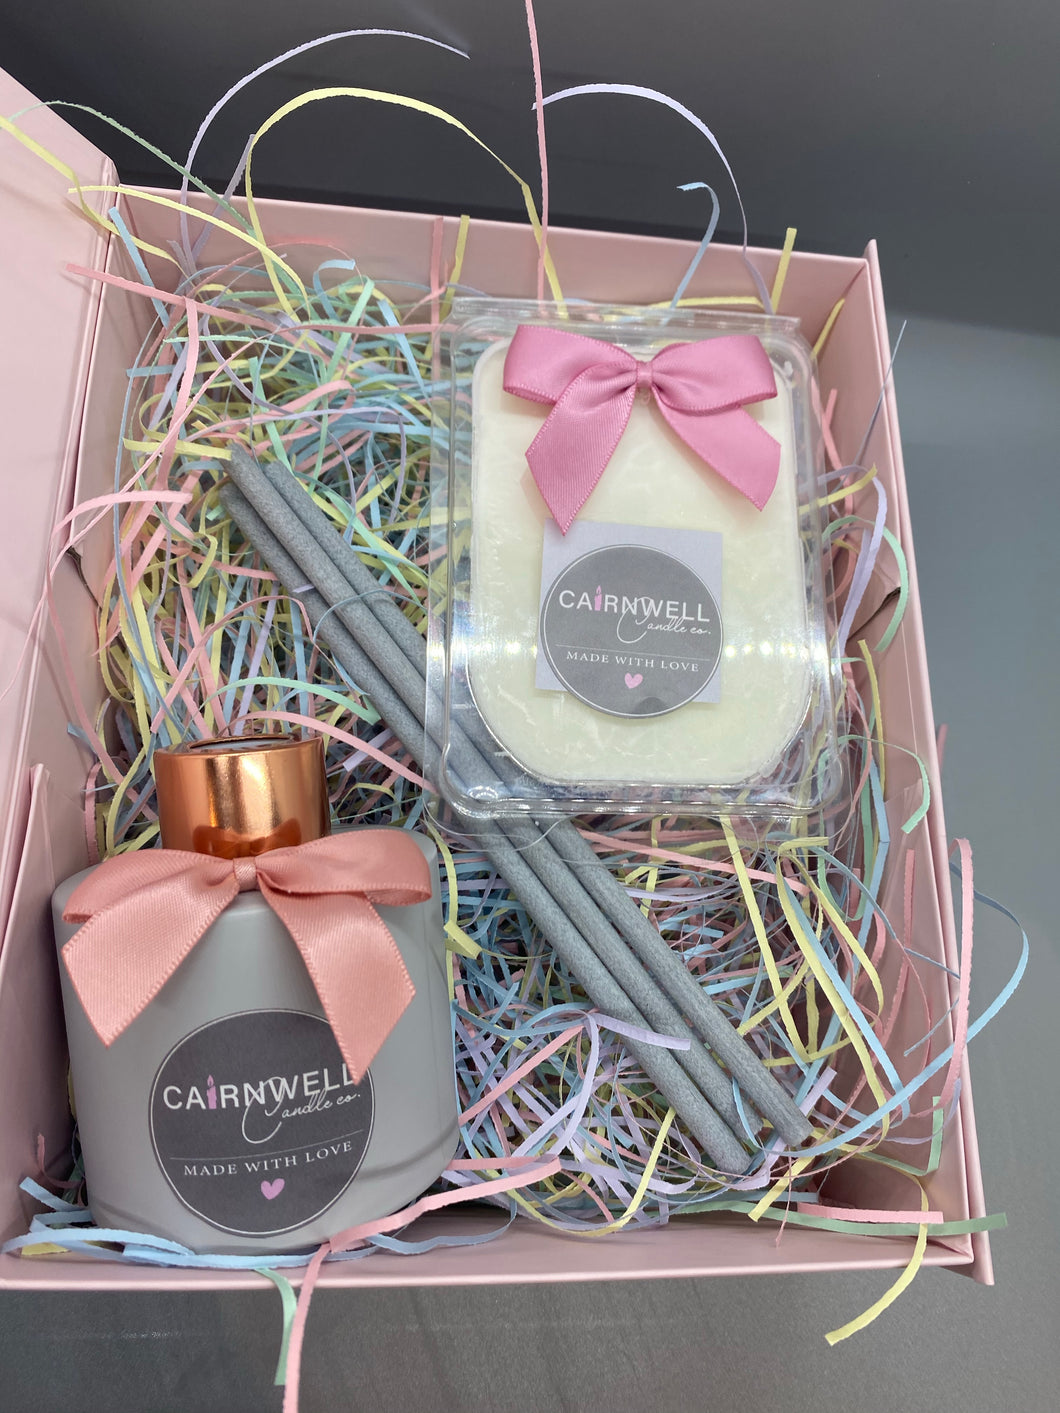 Classic Reed Diffuser Gift Set with Clamshell